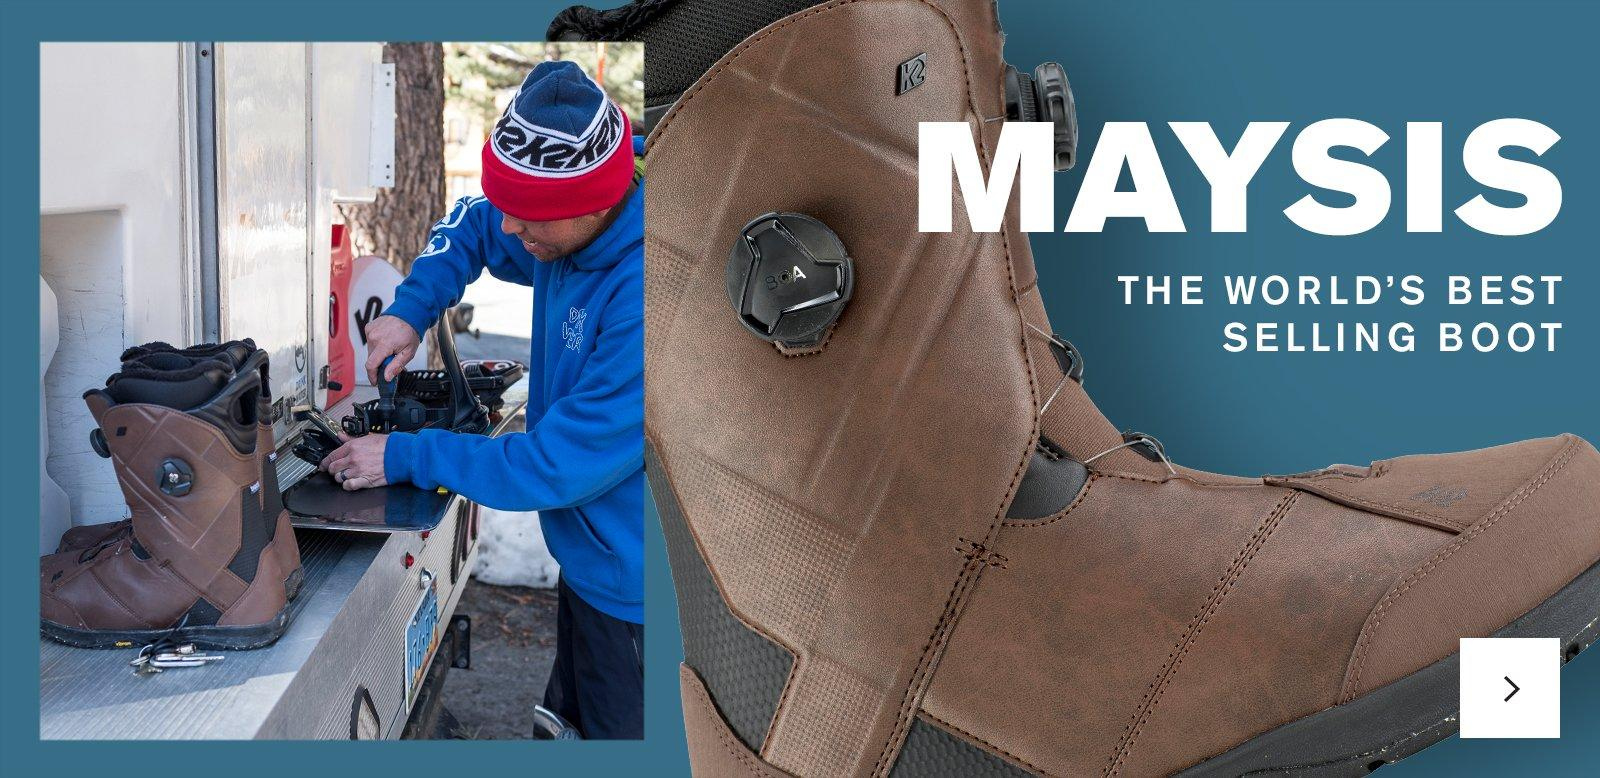 View the K2 Maysis - Best Selling Boot